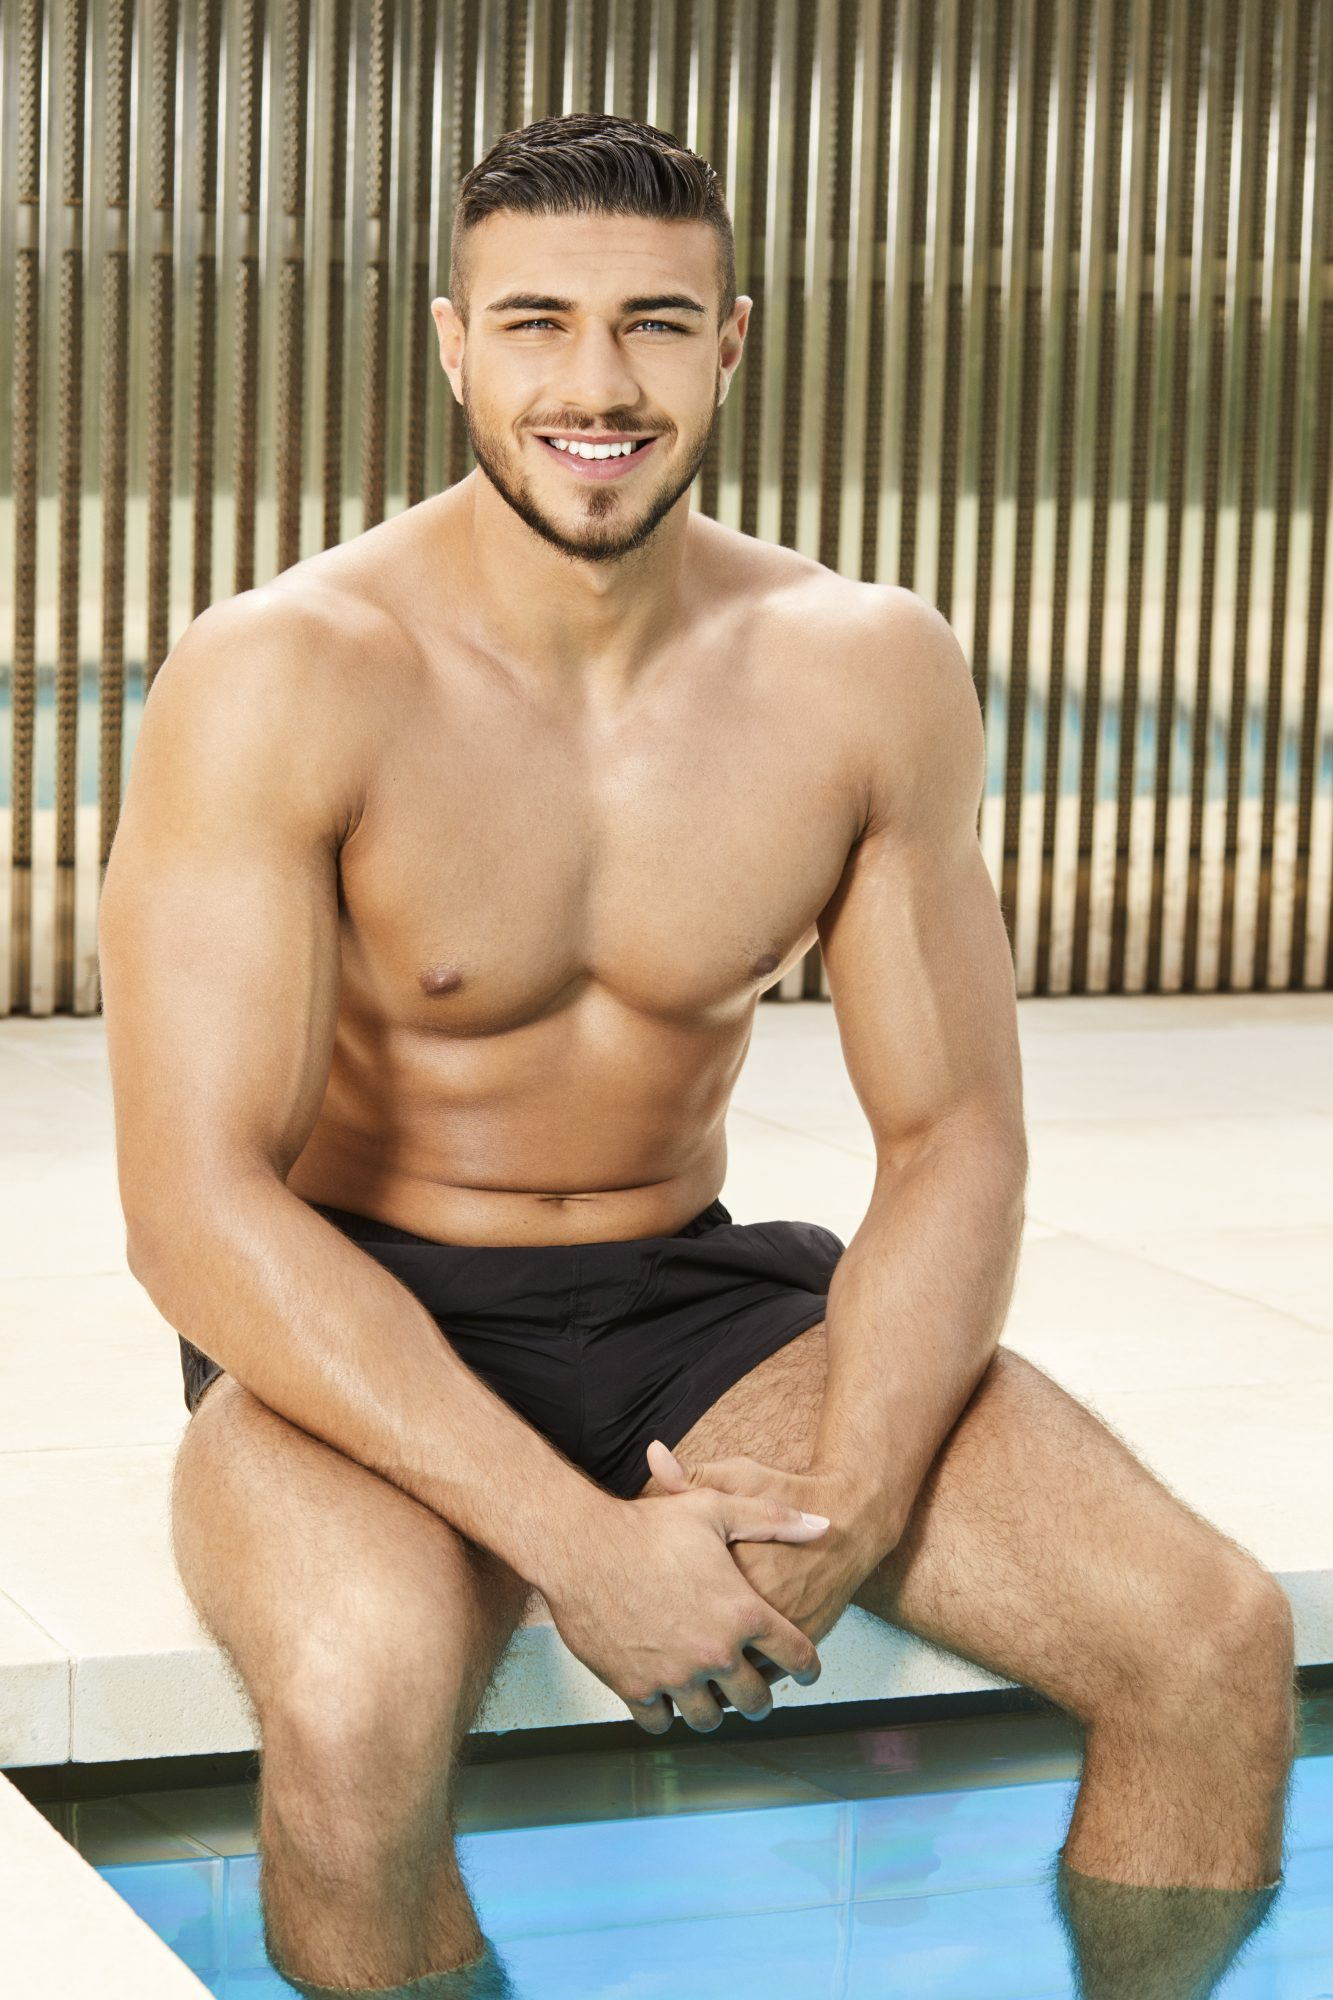 Love Island contestant Tommy Fury, 20, is a boxer from Manchester.